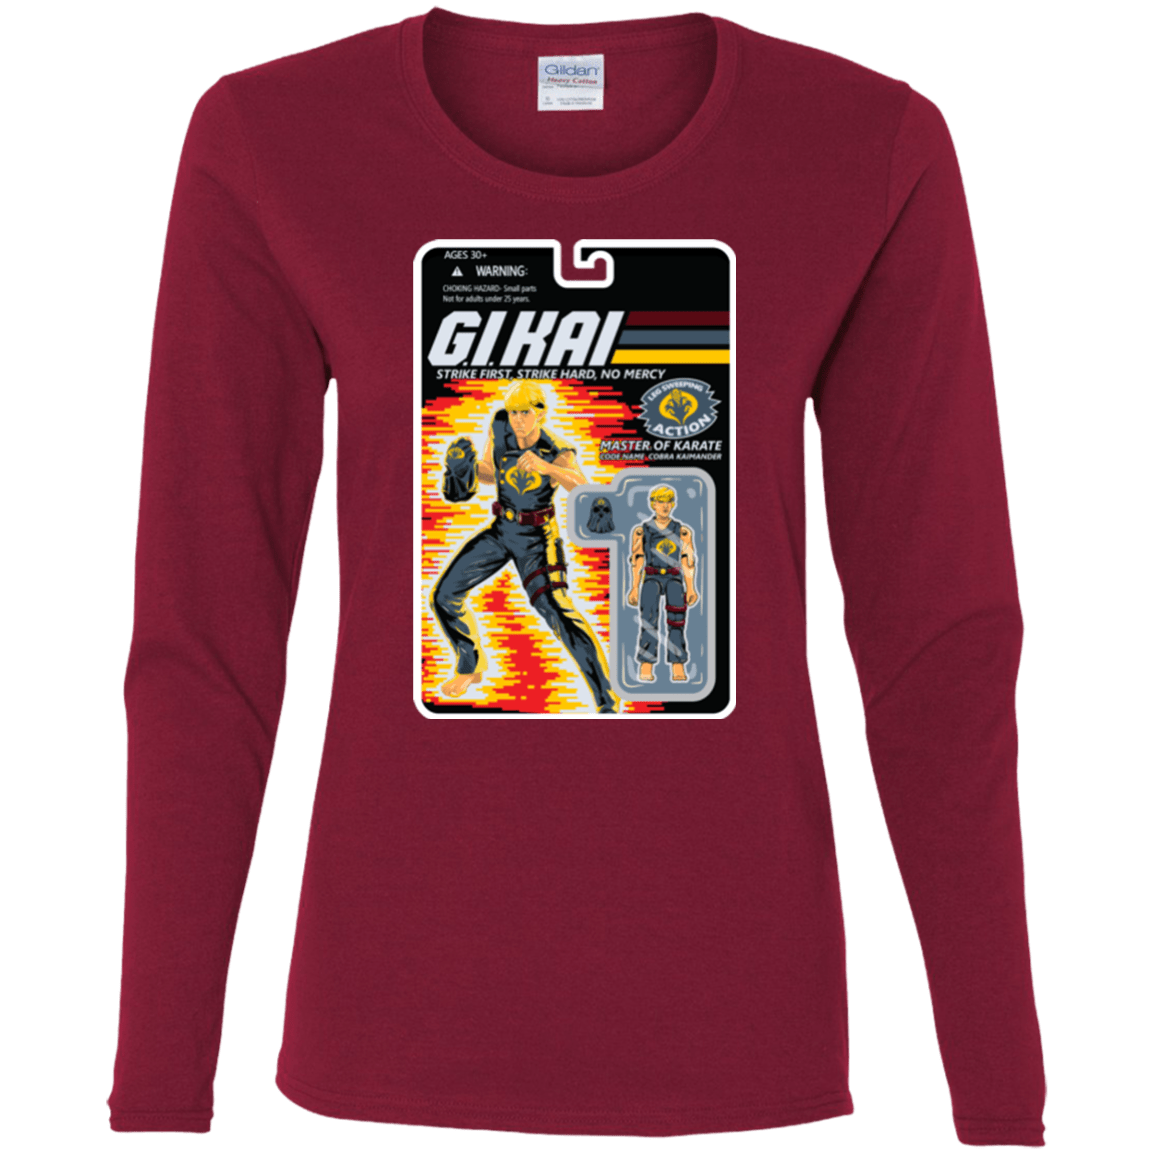 T-Shirts Cardinal / S GI KAI Women's Long Sleeve T-Shirt